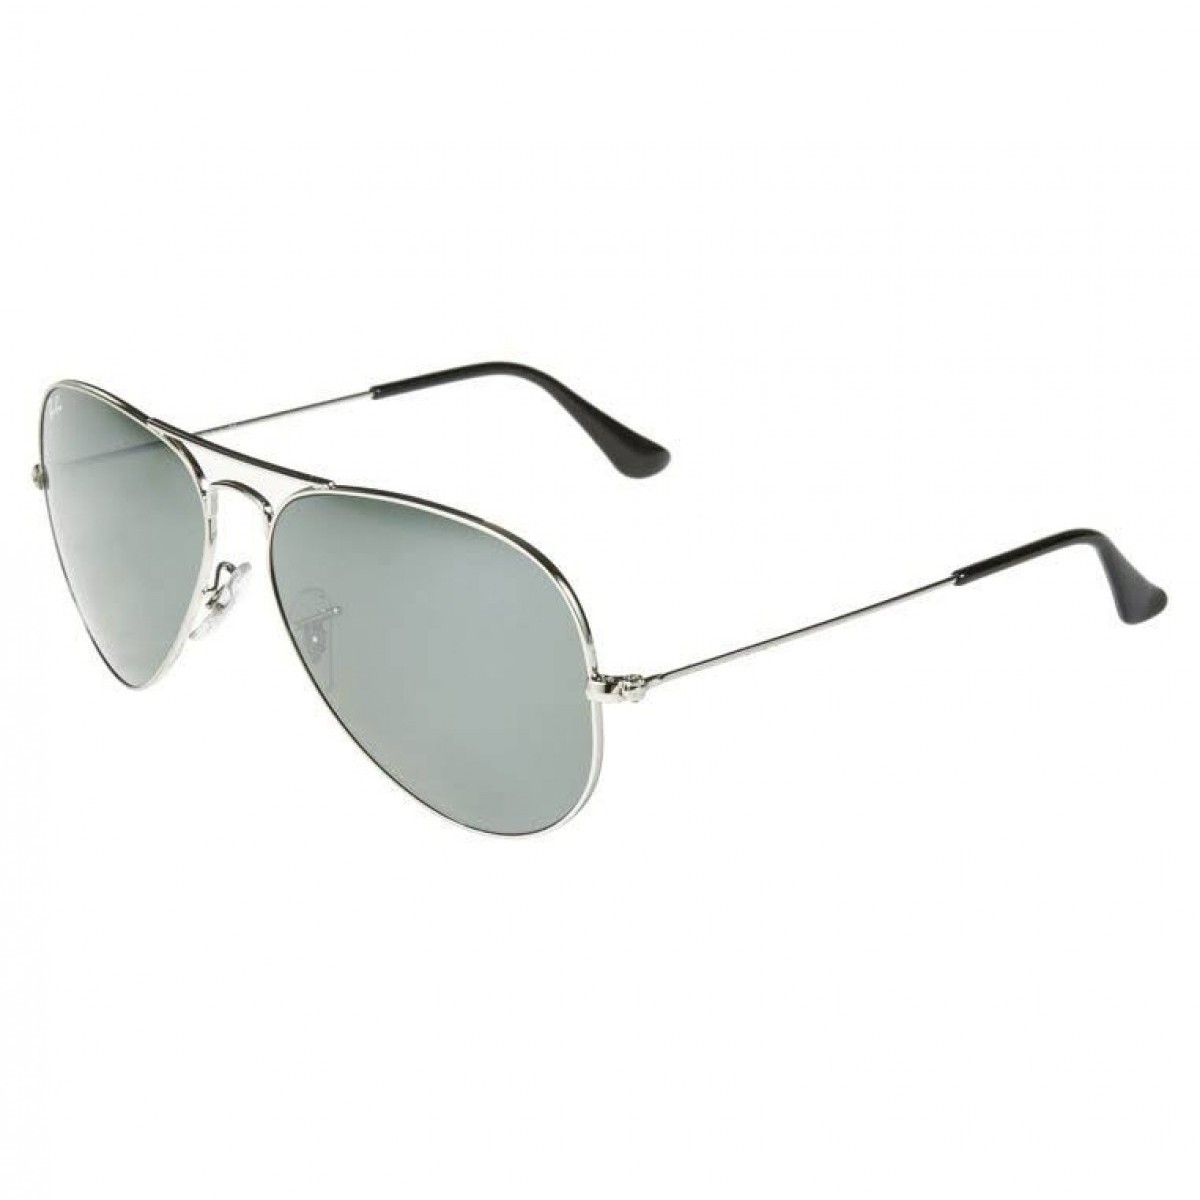 Ray-Ban Aviator Mirror RB3025 W3277 58, 76,00 €, Occhiali Ray Ban Marrone a forma Goccia aviator